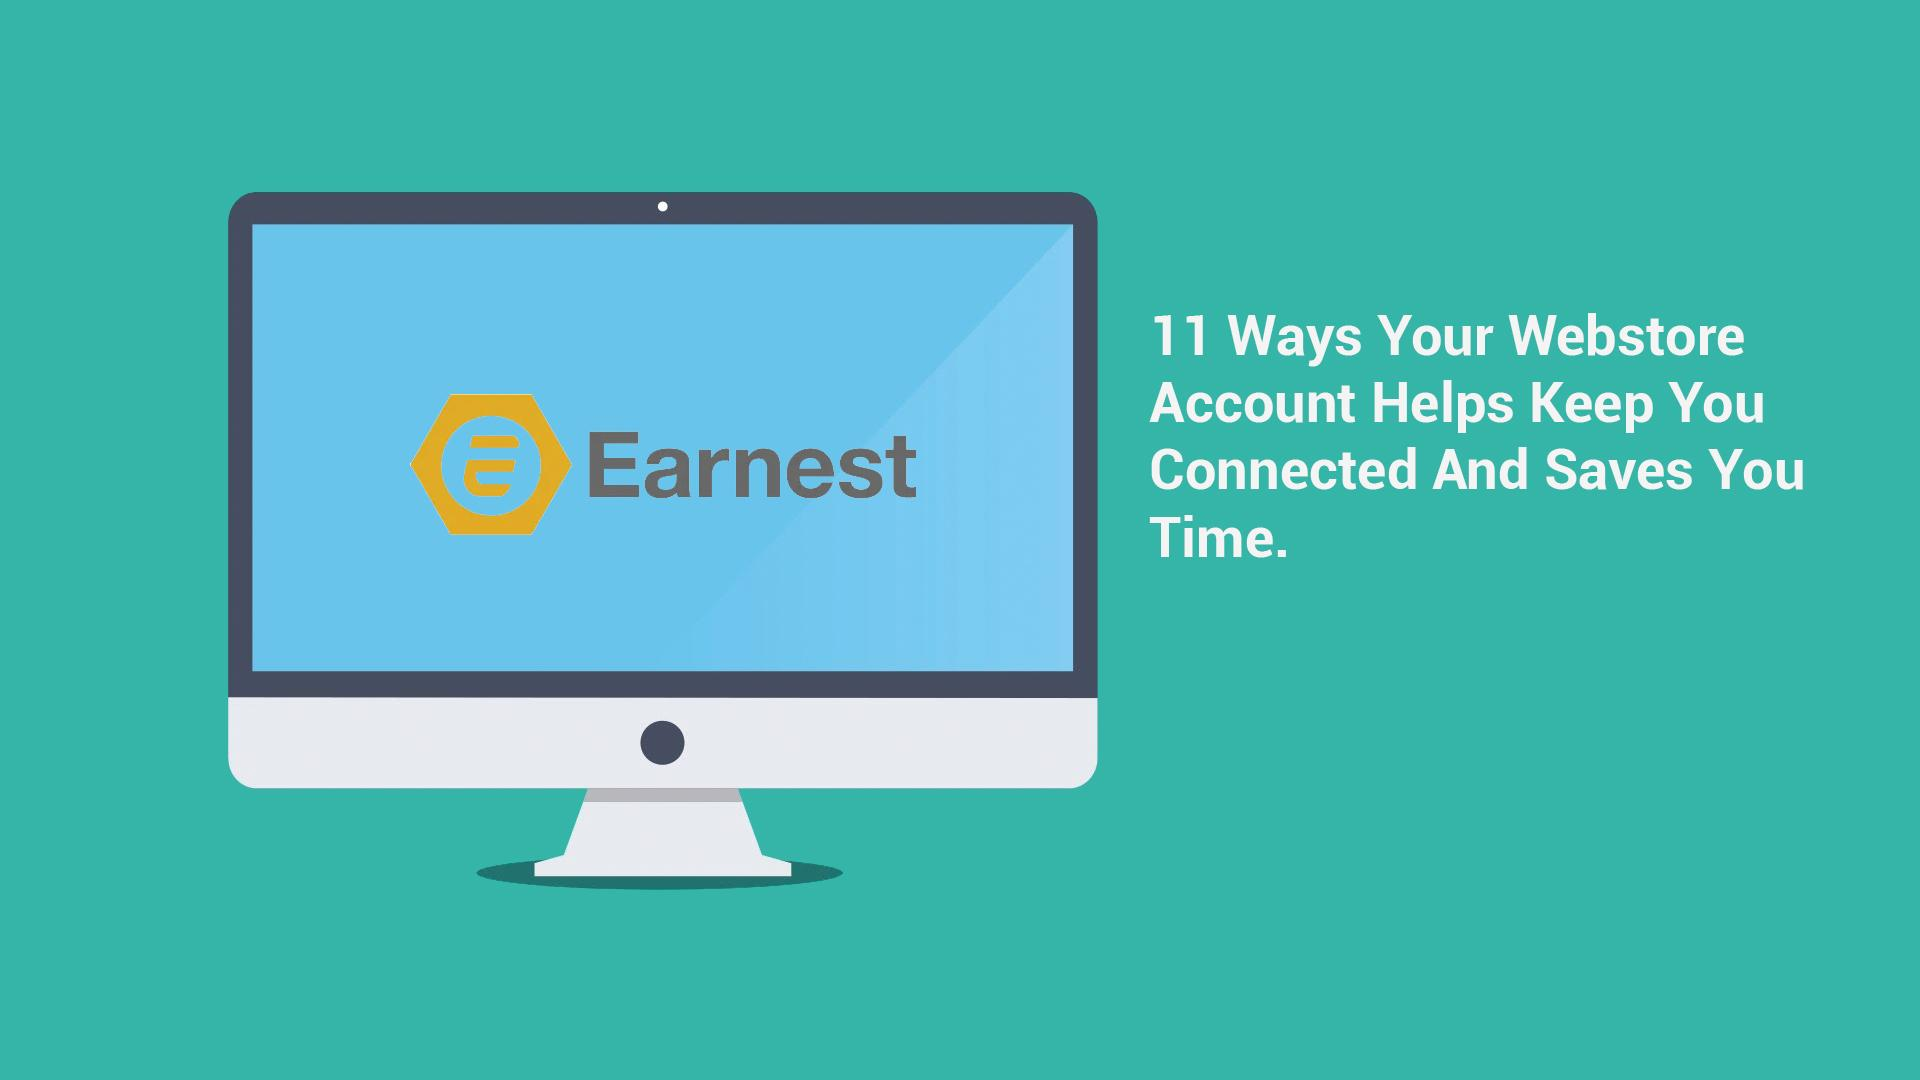 11 Ways Your Webstore Account Helps Keep You Connected And Saves You Time